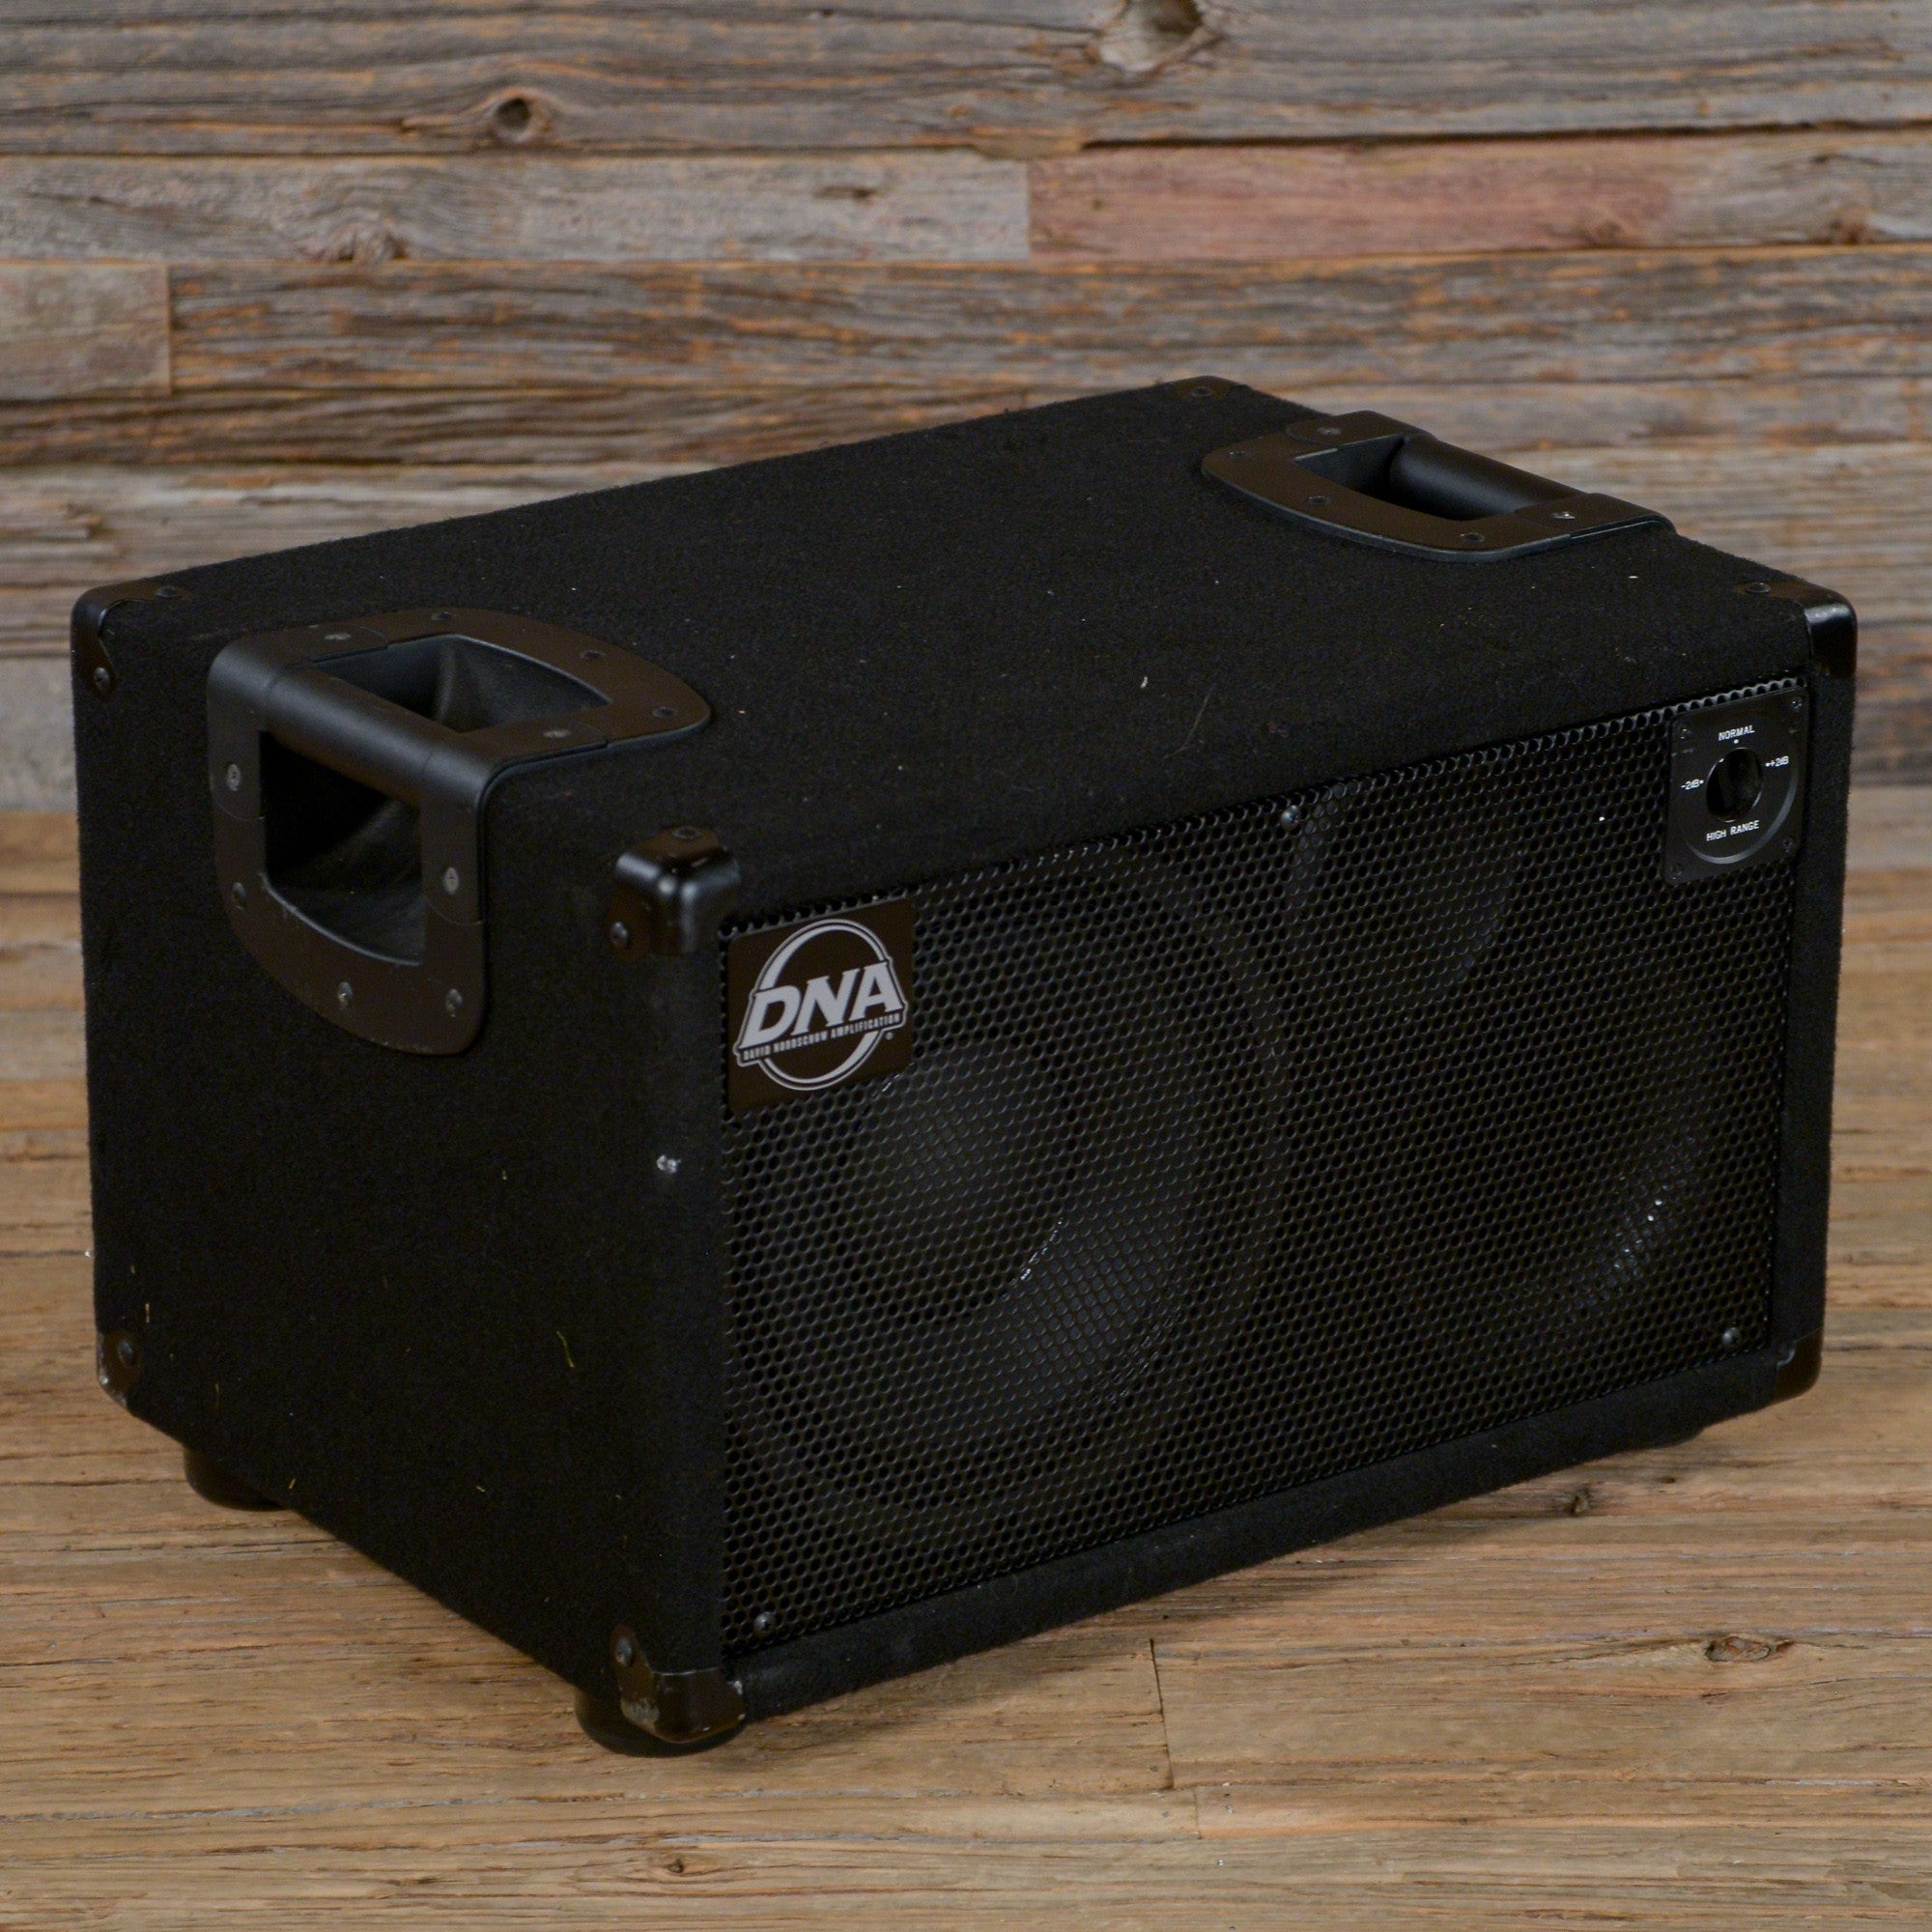 DNA DNS-110 1x10 Bass Cabinet USED | Chicago Music Exchange